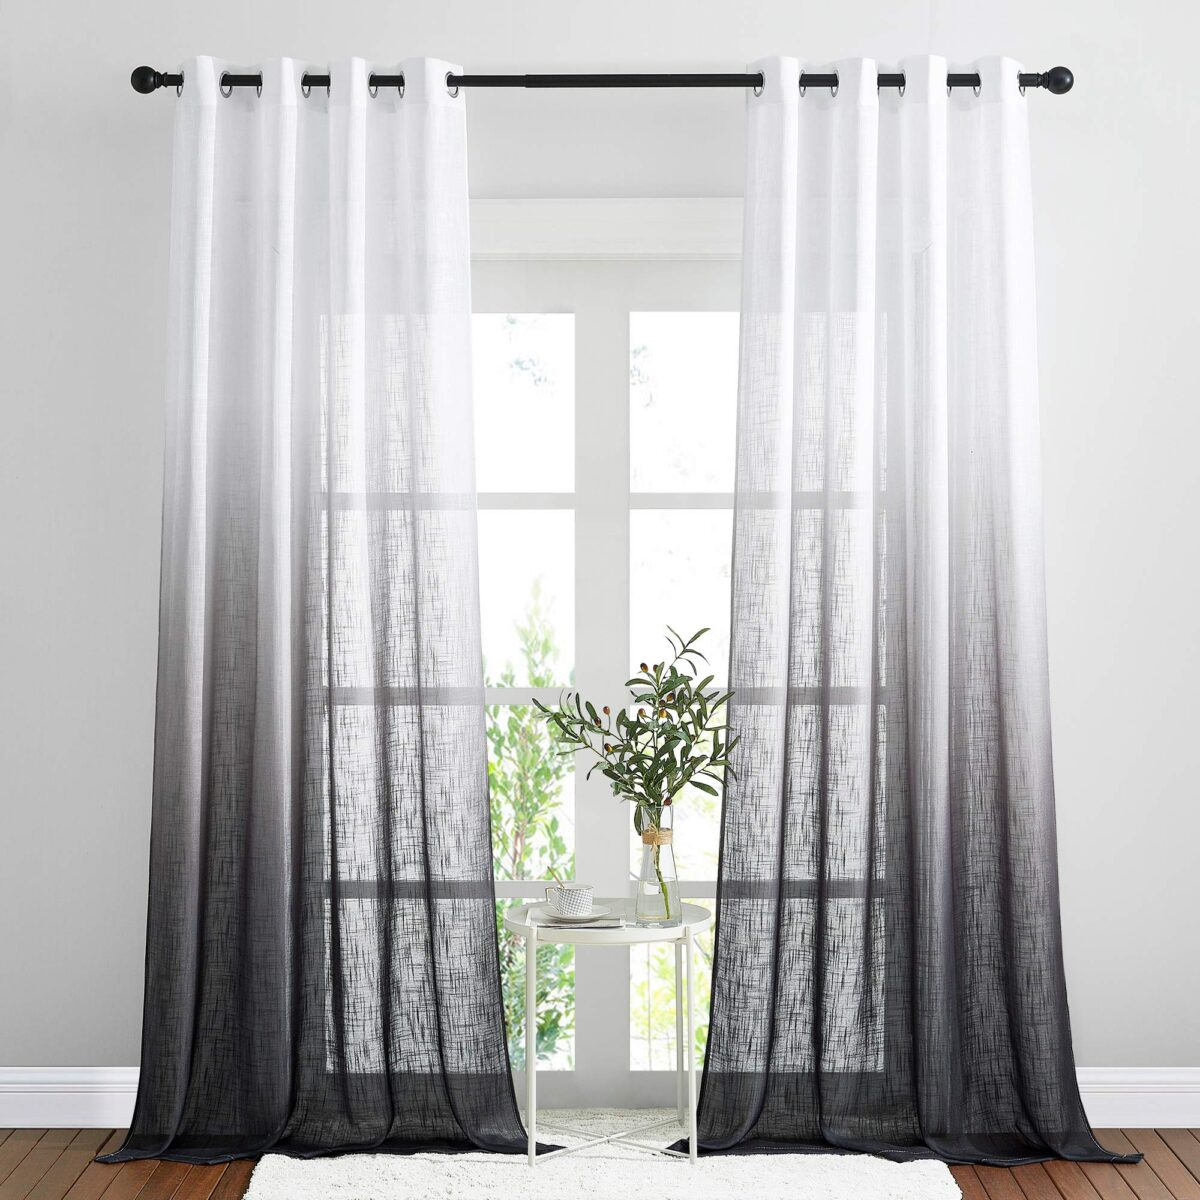 how-to-choose-color-privacy-curtains-1